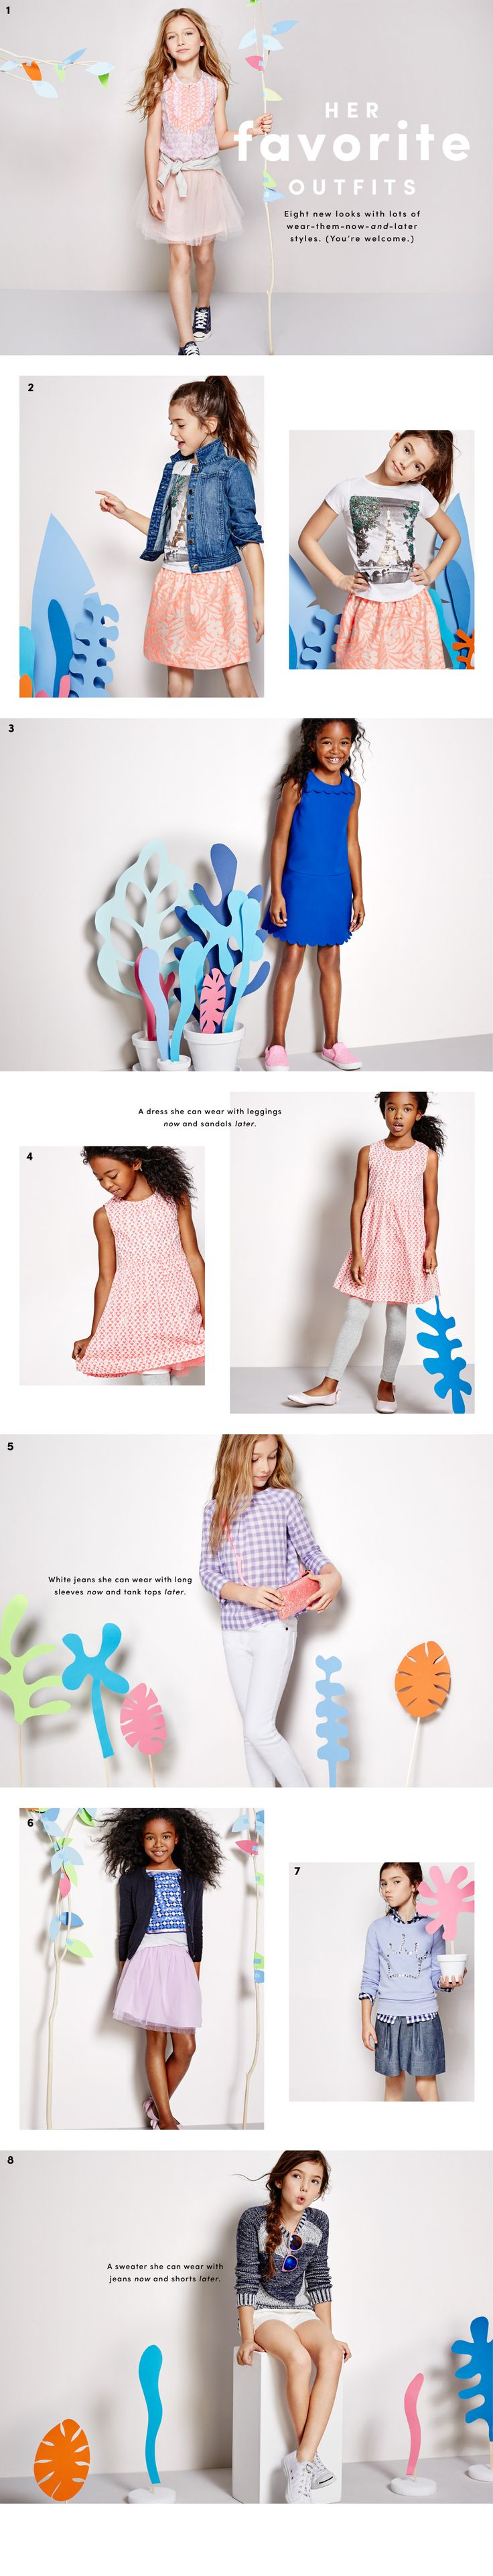 Girls' Clothing - Shop Everyday Deals on Top Styles - J.Crew Factory (Kids Top Fashion)